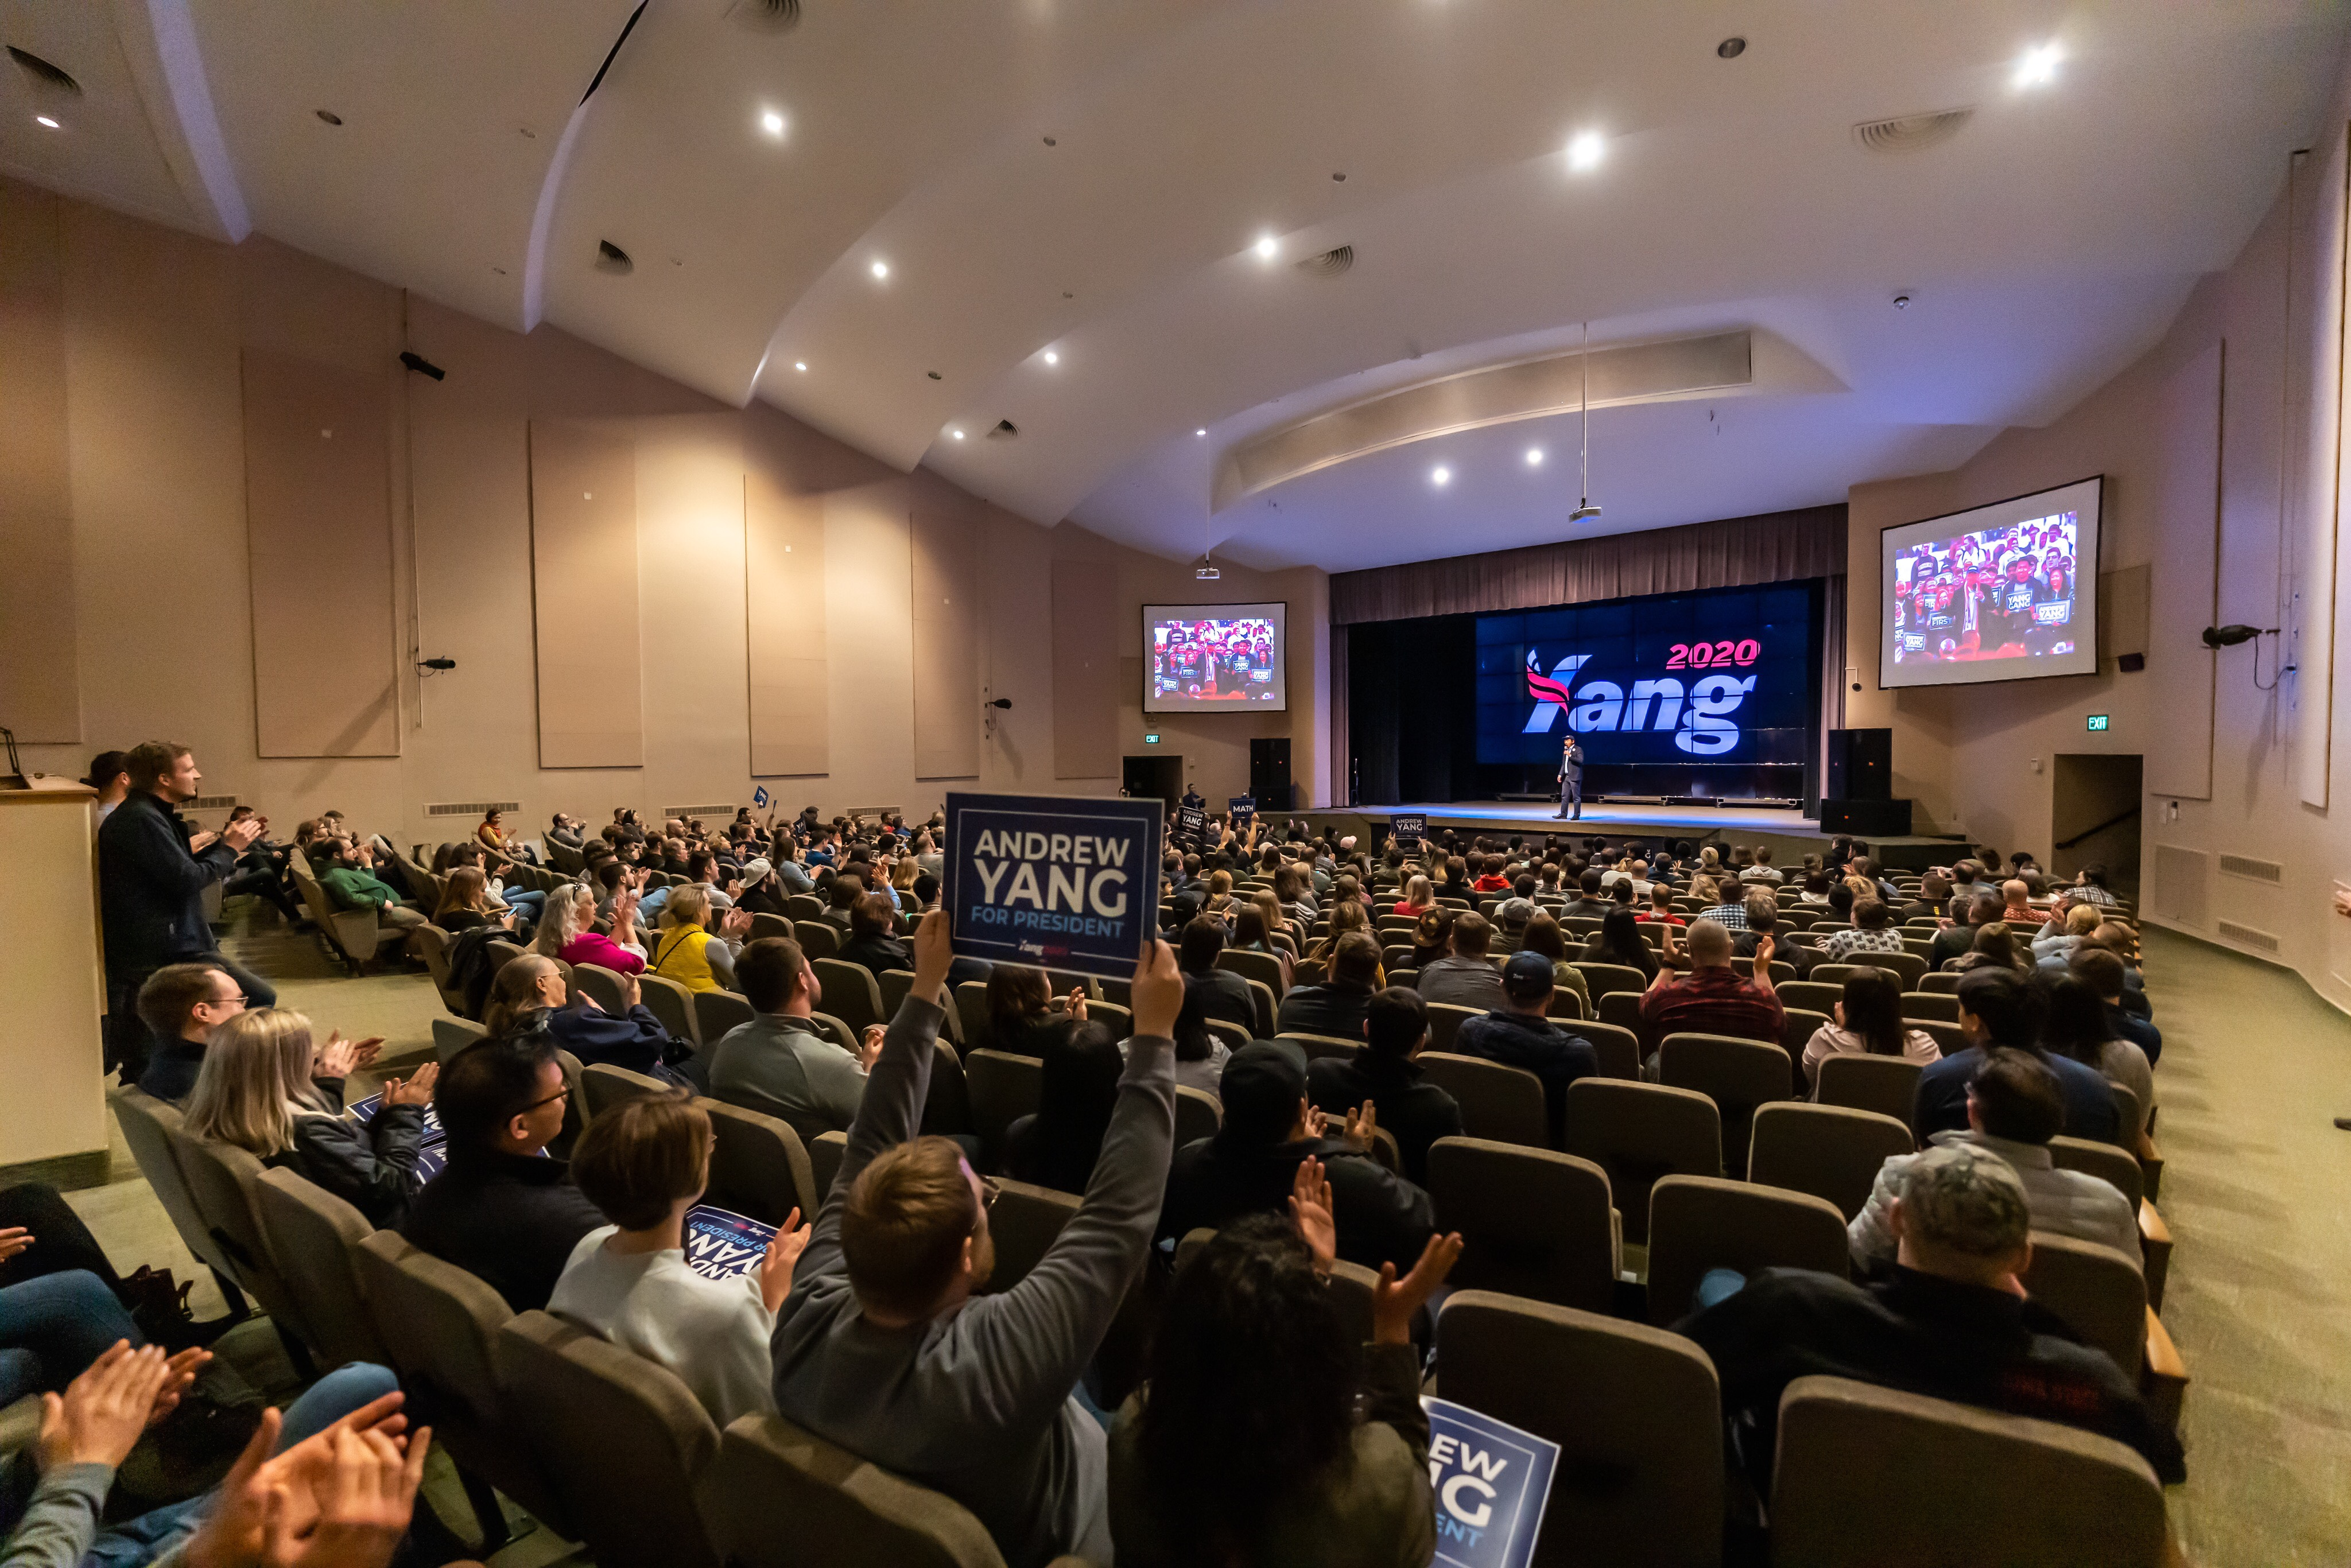 An auditorium filled with Iowans listening to Andrew Yang describe his vision for the future of America